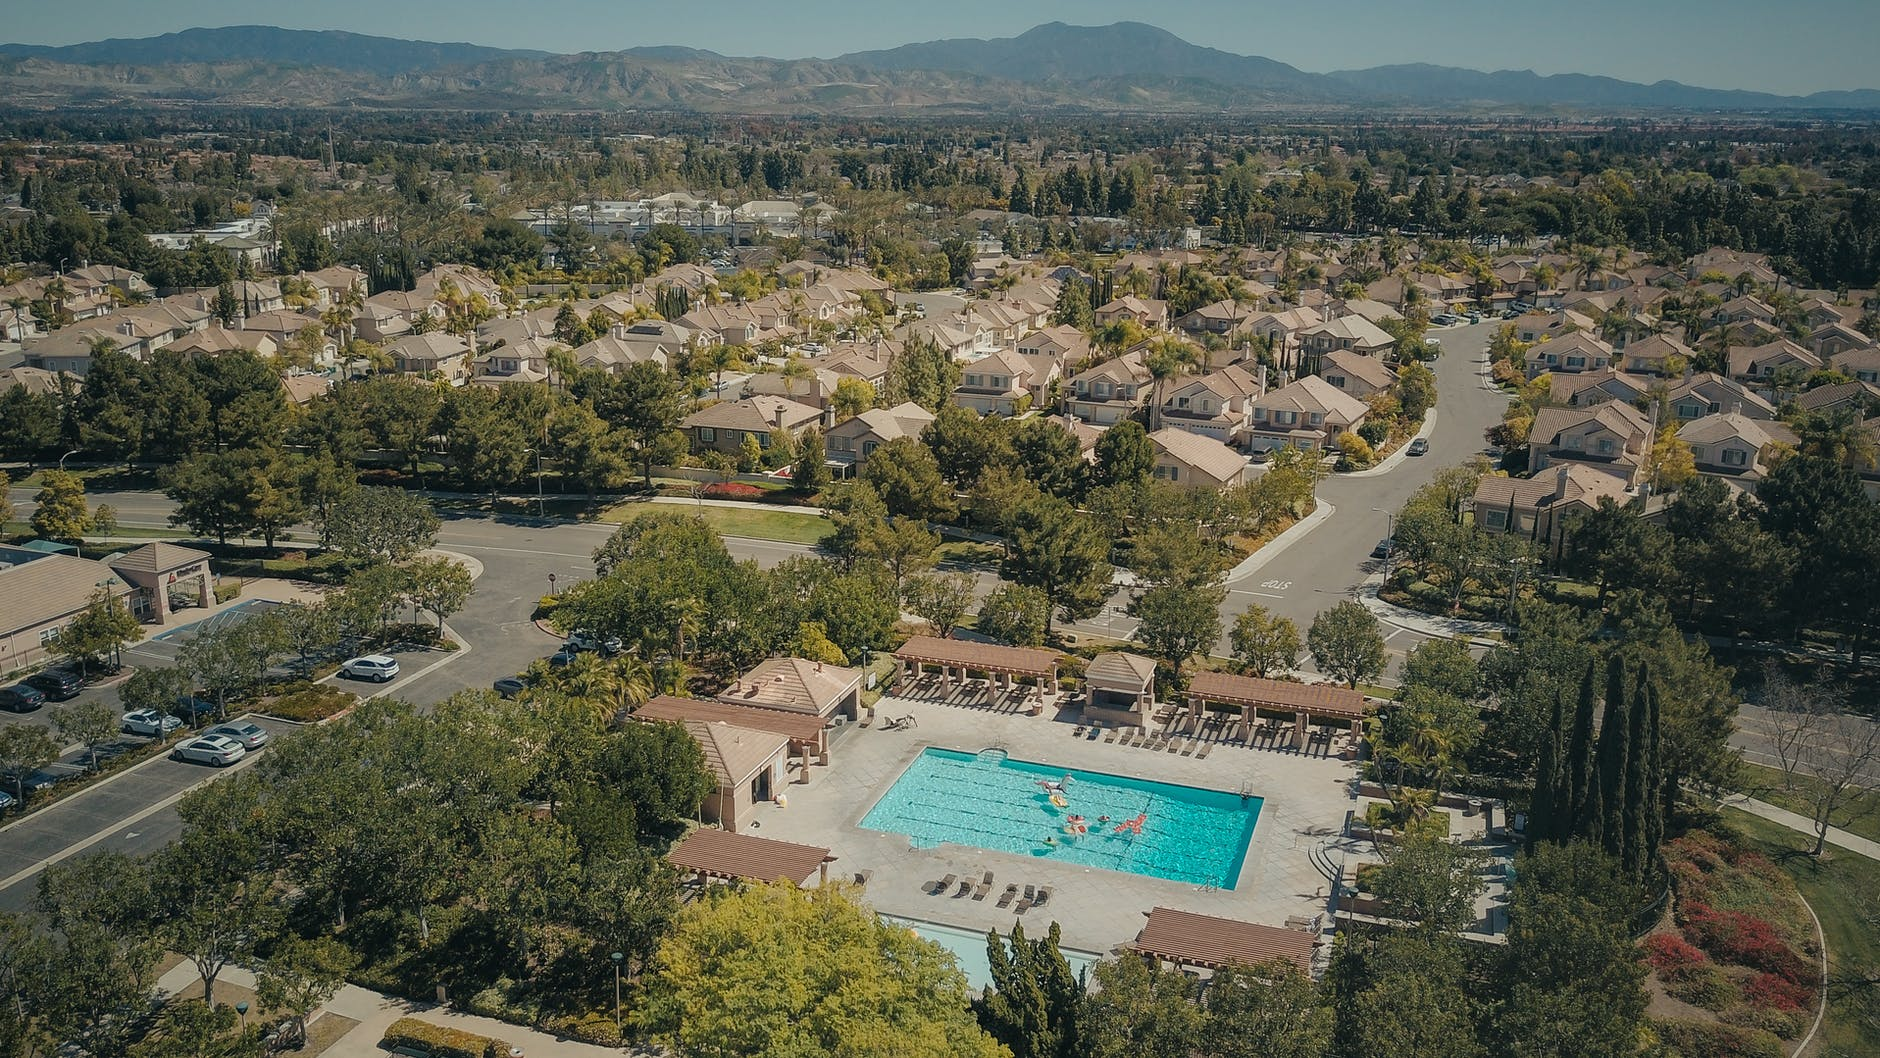 drone shot of resort in a city